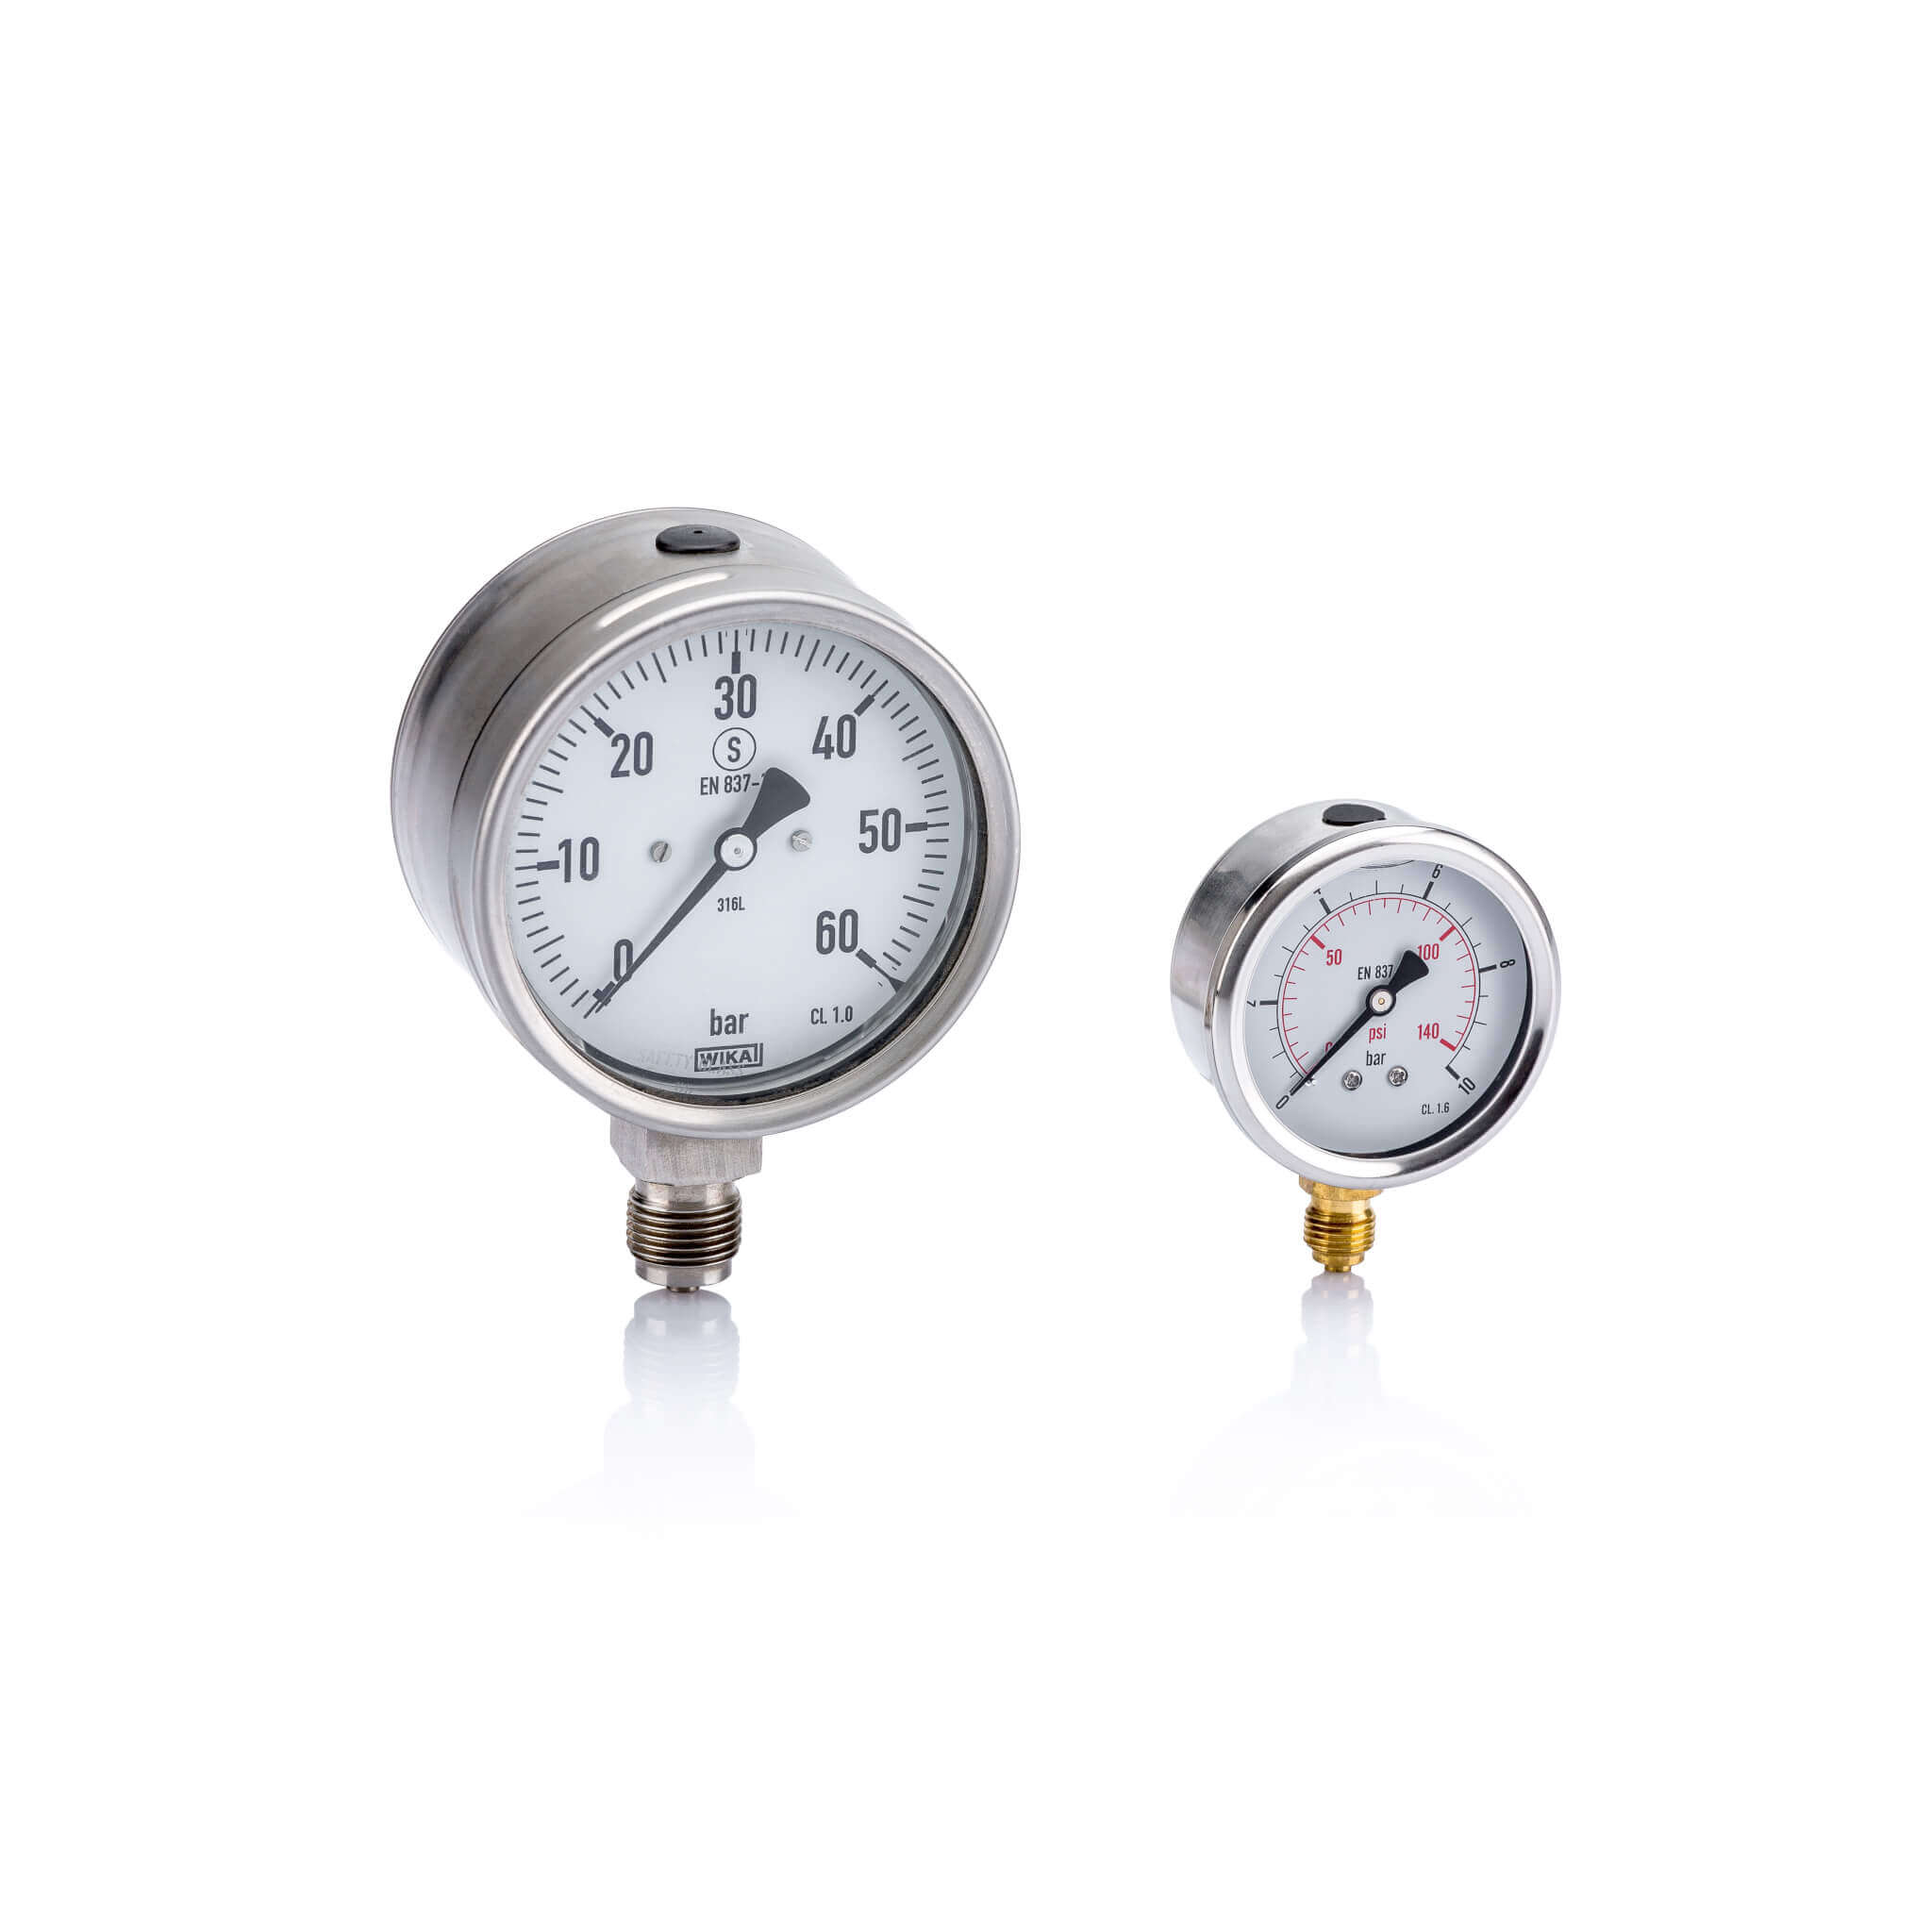 Hydraulic manometers